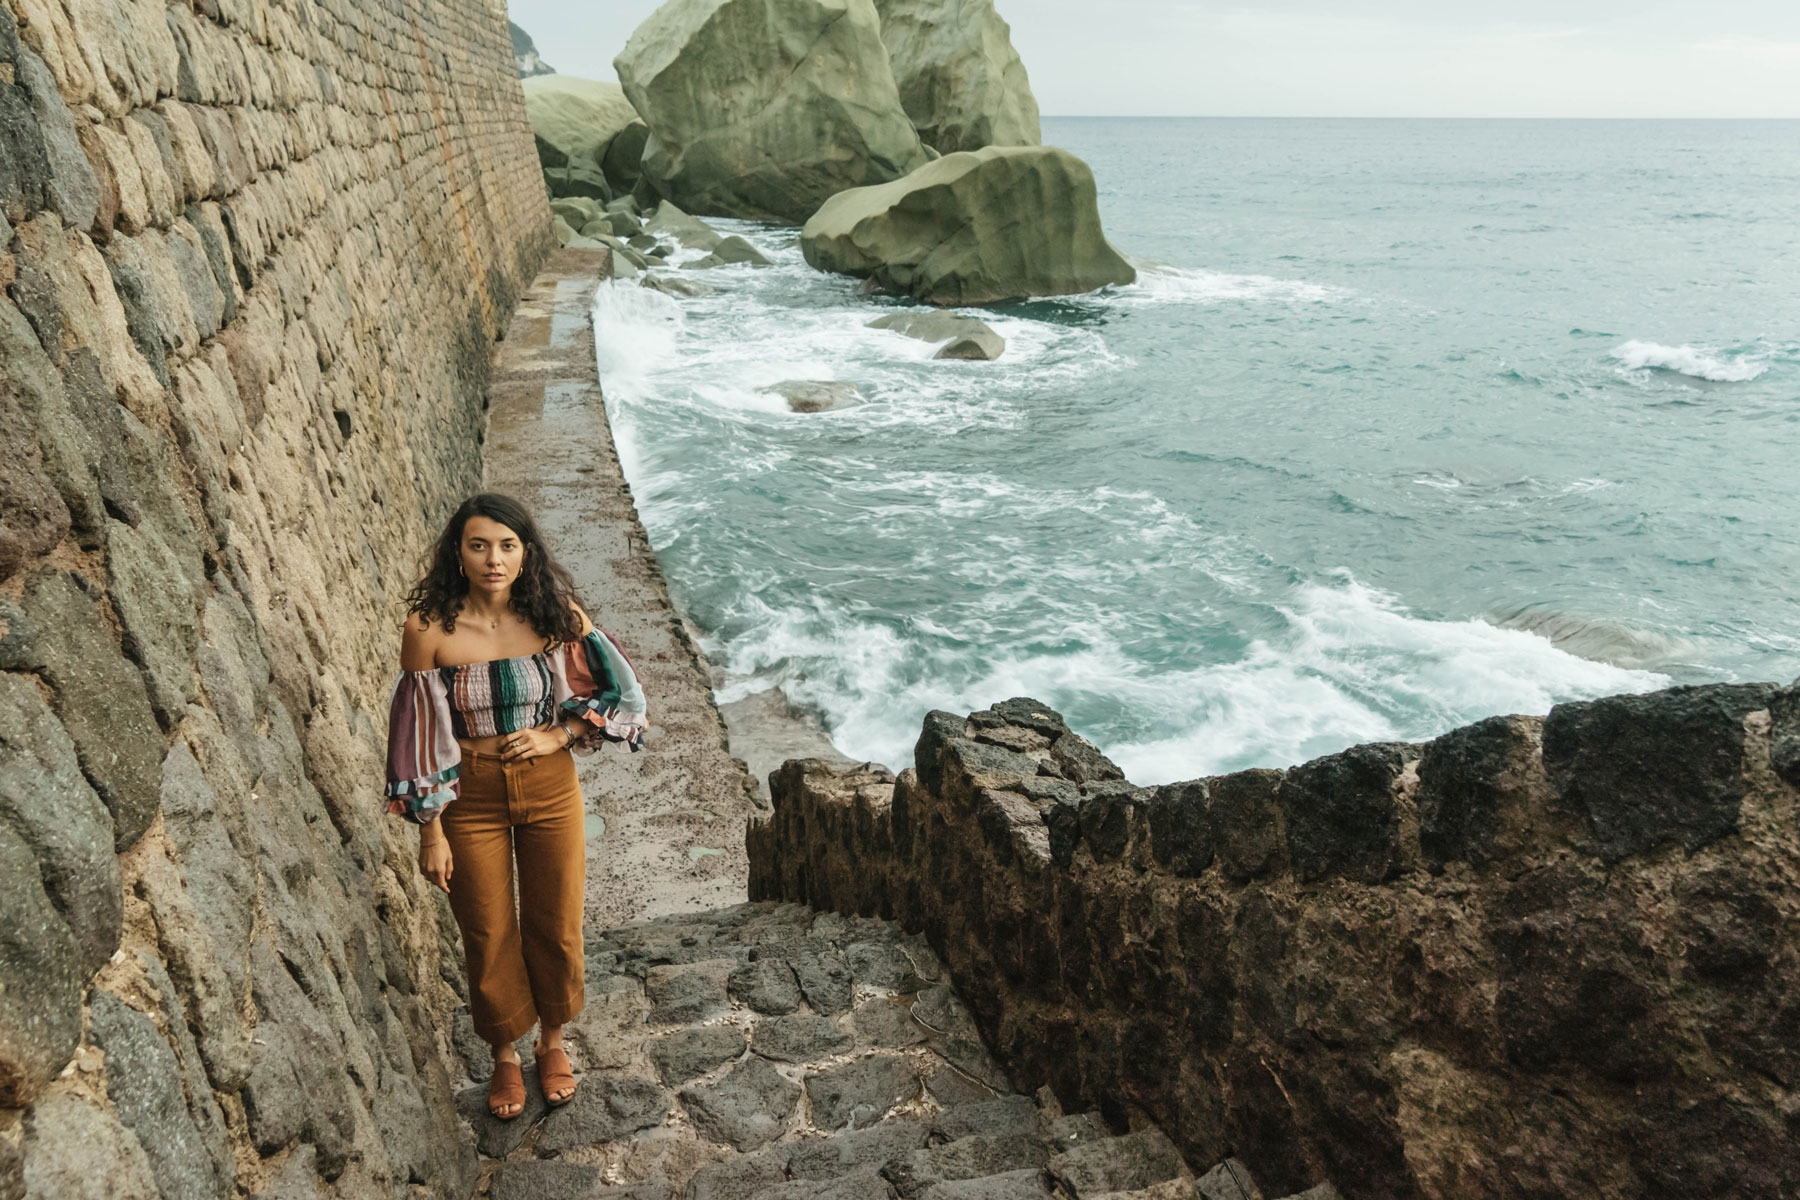 Apiece Apart Travels: The Art of Solo Travel with April Valencia